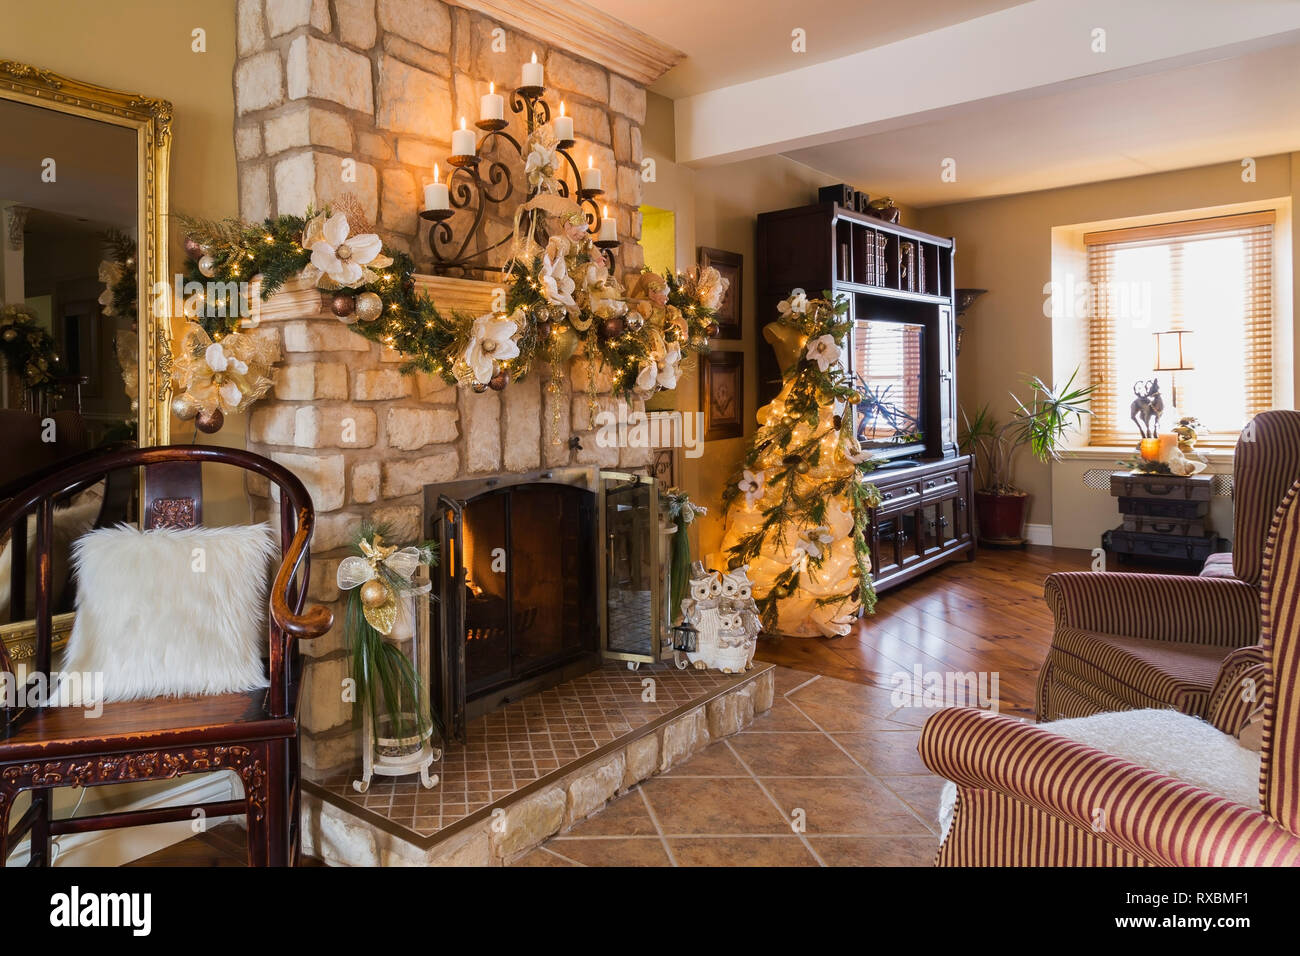 Antique wooden and two upholstered sitting chairs in front of natural cut-stone wood burning fireplace with Christmas decorations in living room insid - Stock Image